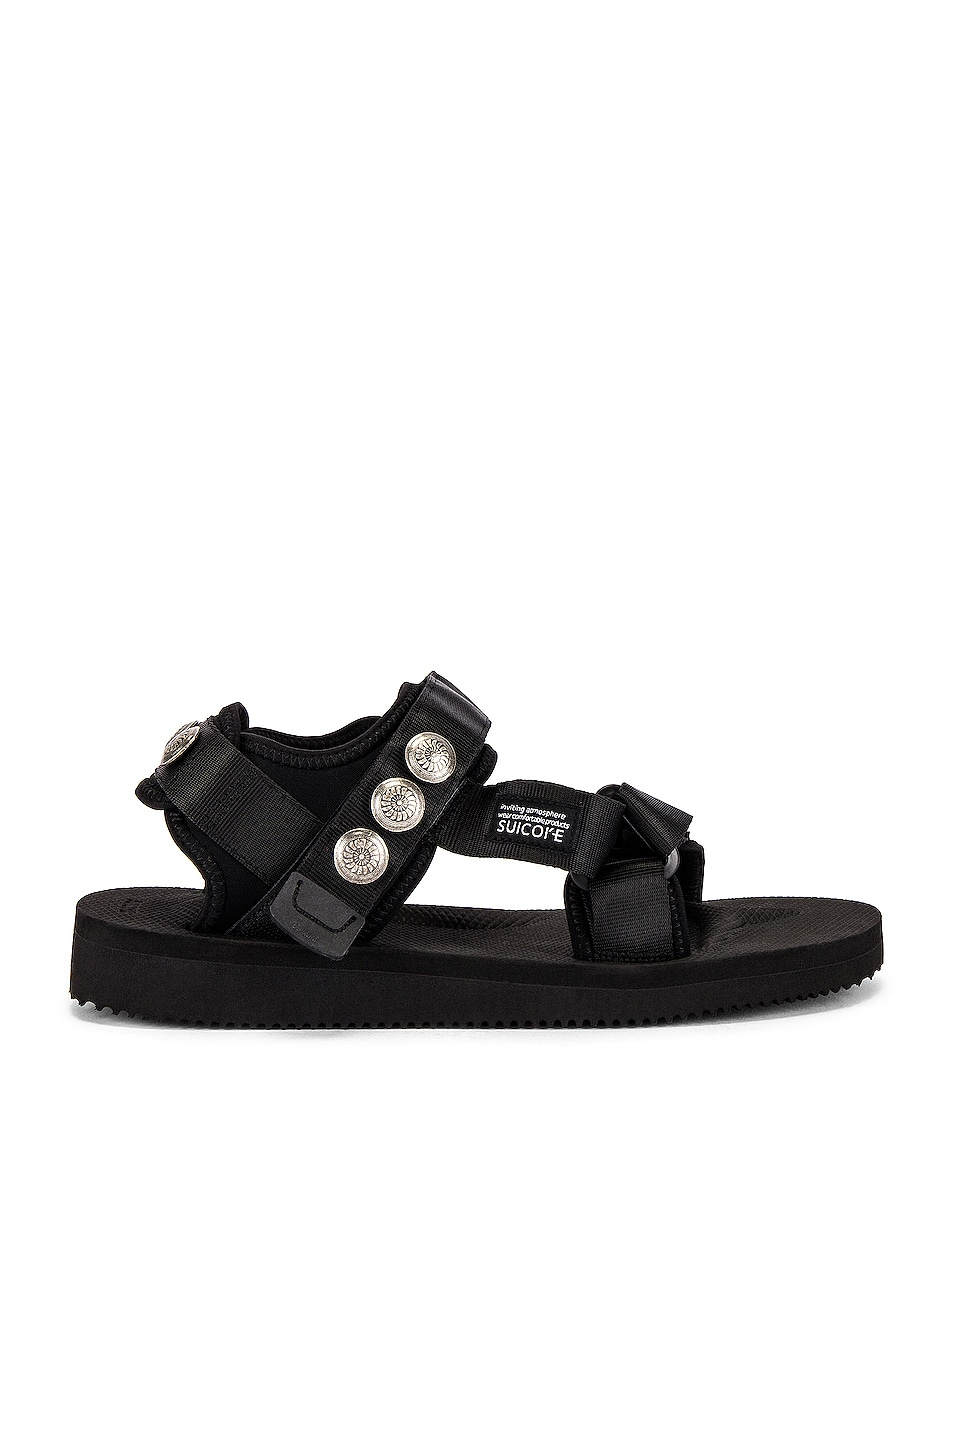 Image 2 of JOHN ELLIOTT x Blackmeans x Suicoke Lotus Sandal in Black